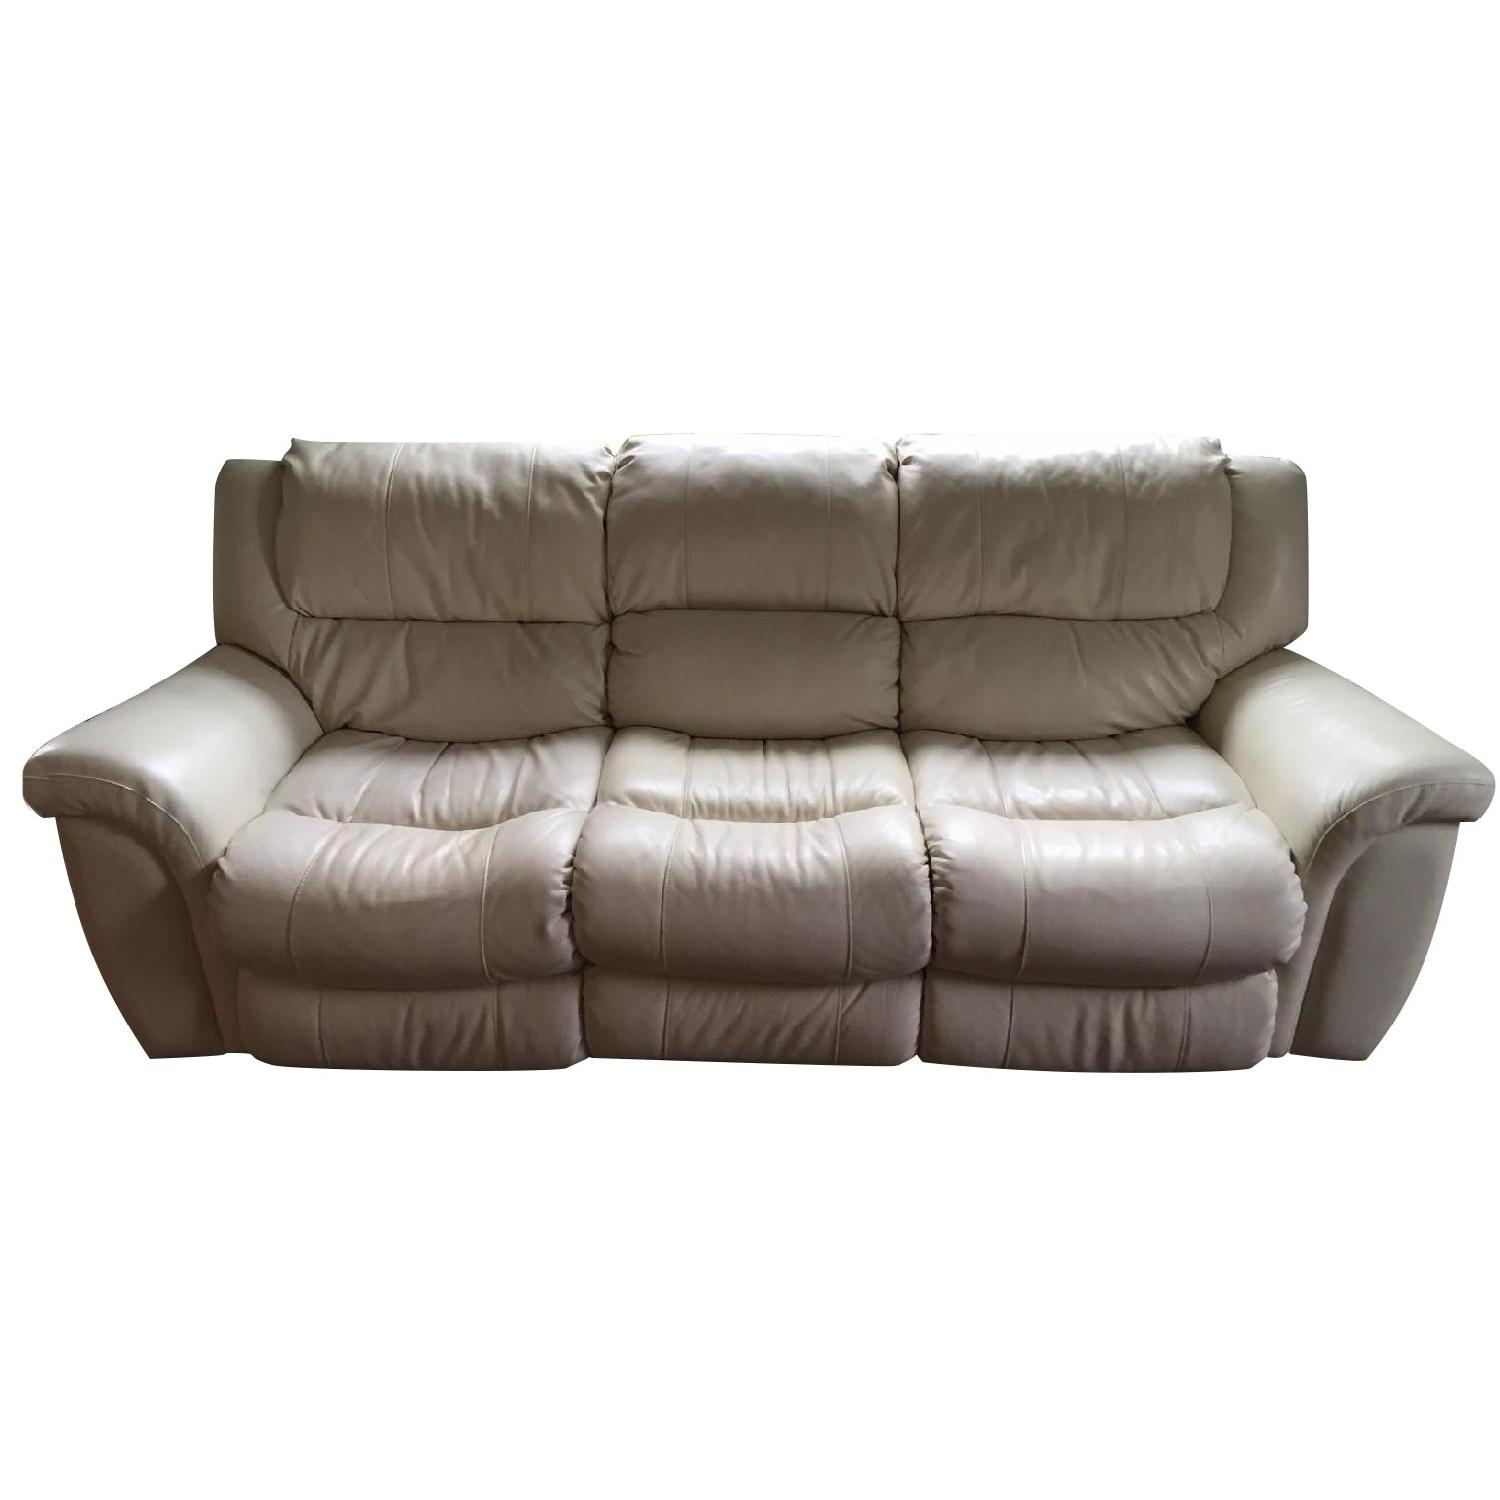 Value City White Leather Power Recliner Sofa Chair Aptdeco